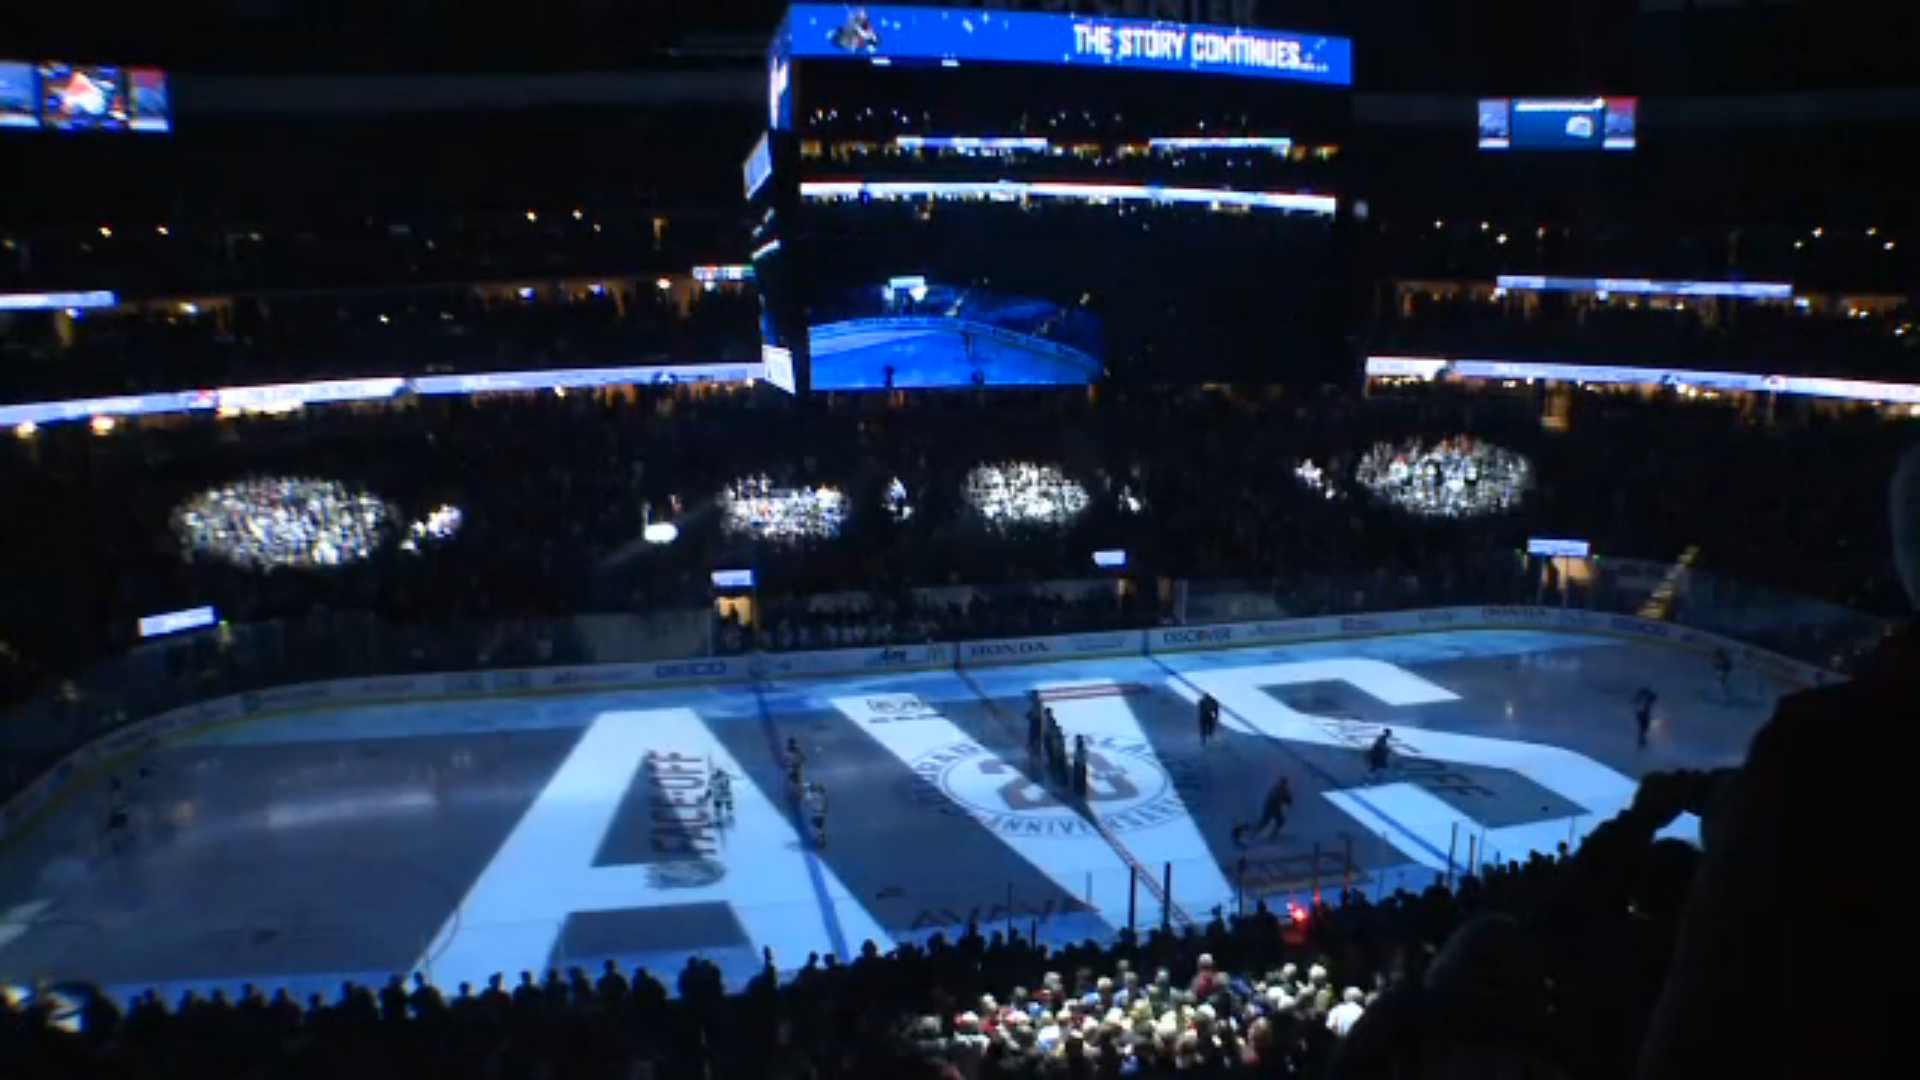 Patrick-Roy-Show1-Ice-Projection.jpg